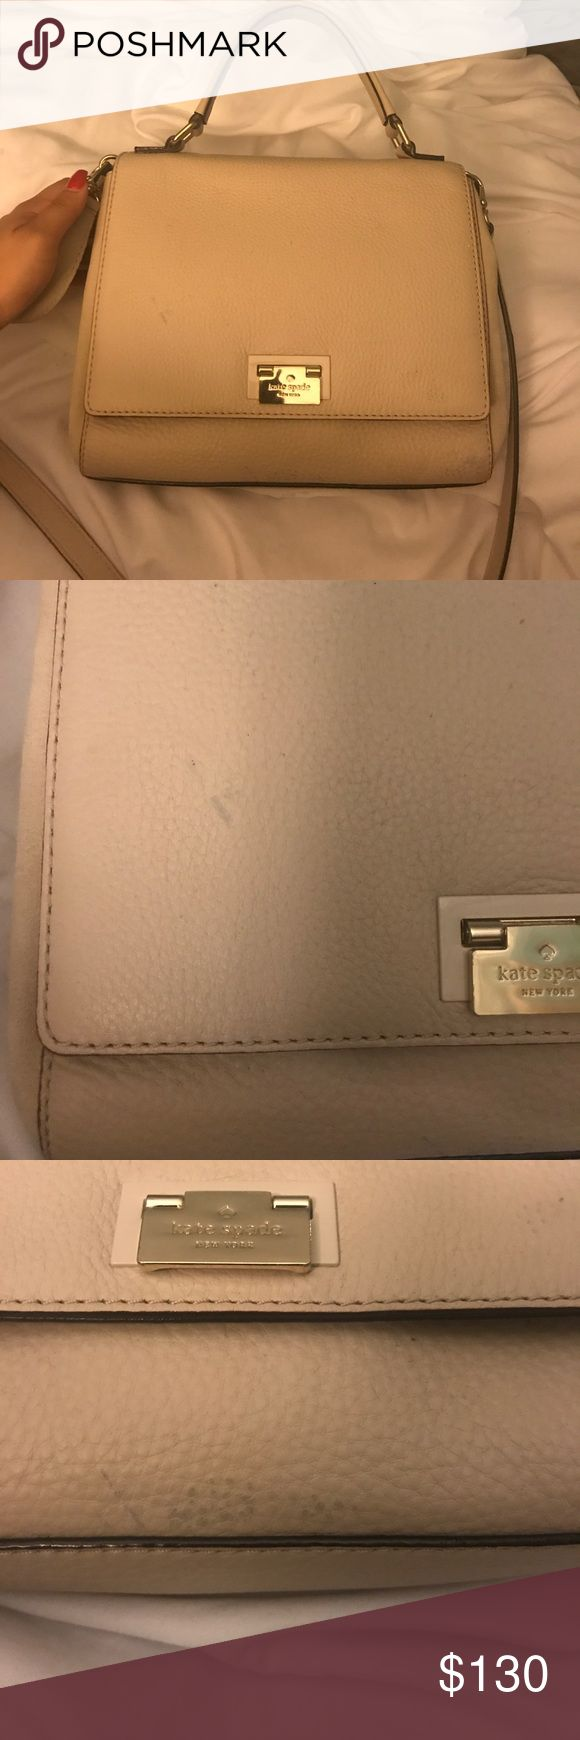 Kate Spade Crossbody Cream leather with suede on the sides. Gold hard ware in great shape, no tears or scratches. There is some color transfer towards the bottom as pictured and on the front. Inside looks brand new. Tory Burch Bags Crossbody Bags